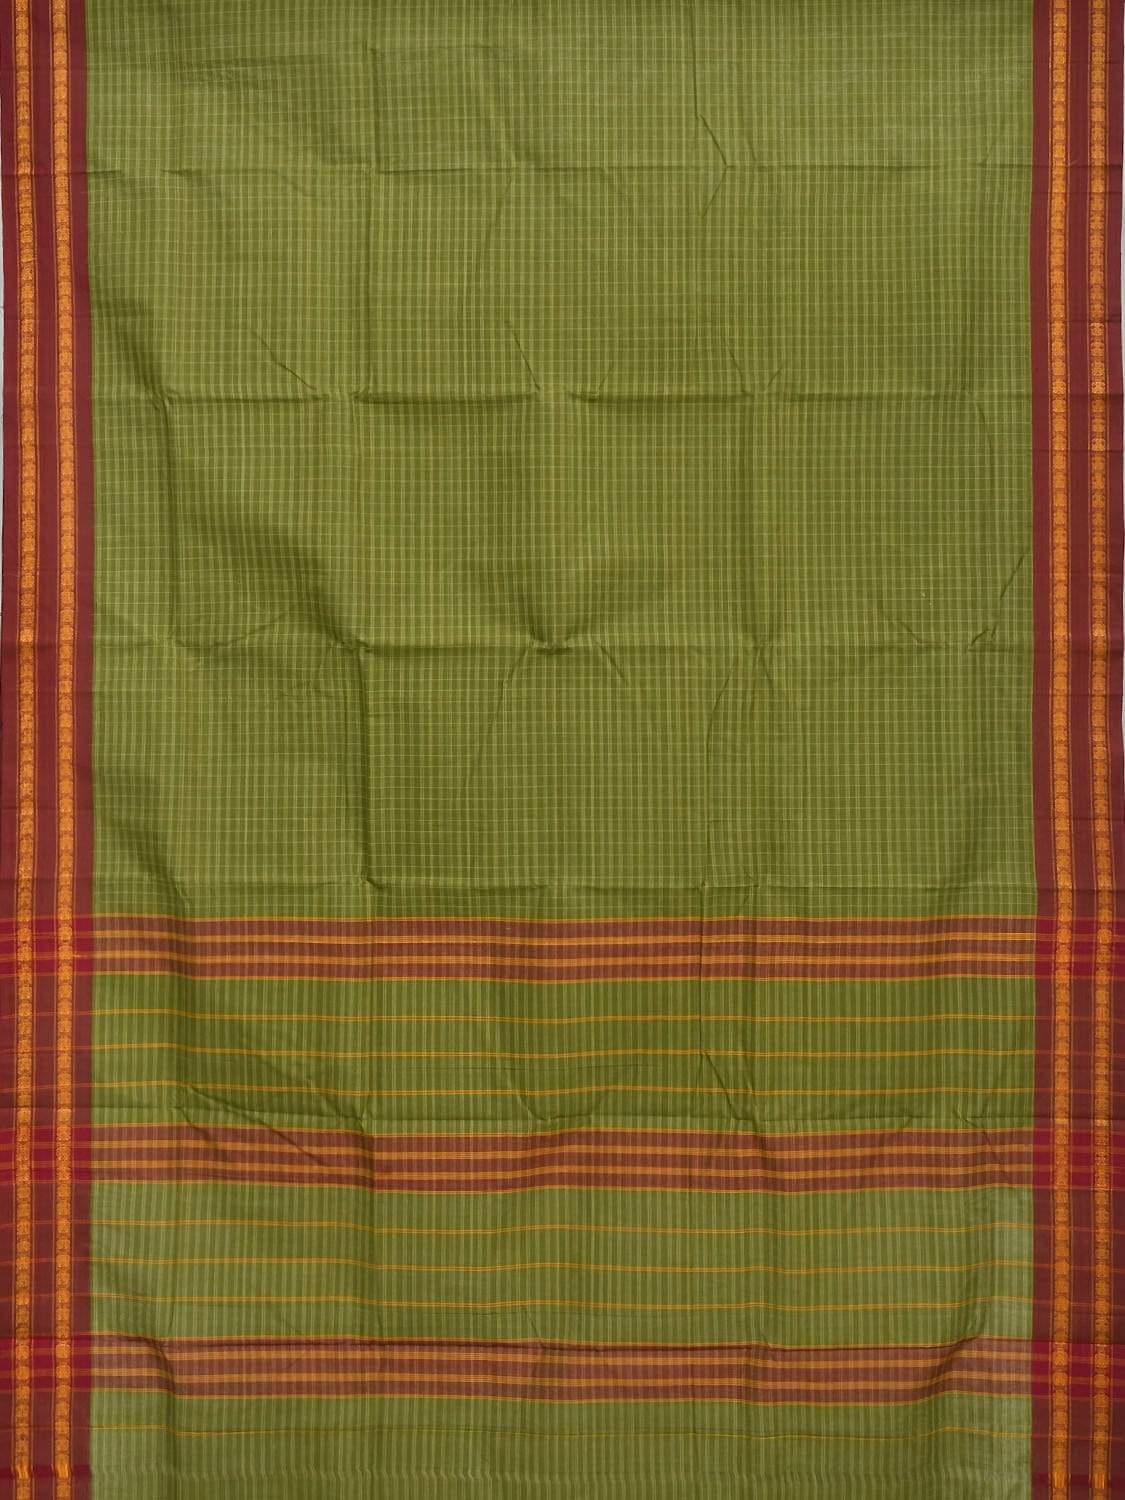 Green Narayanpet Cotton Handloom Saree with Checks Design No Blouse np0253